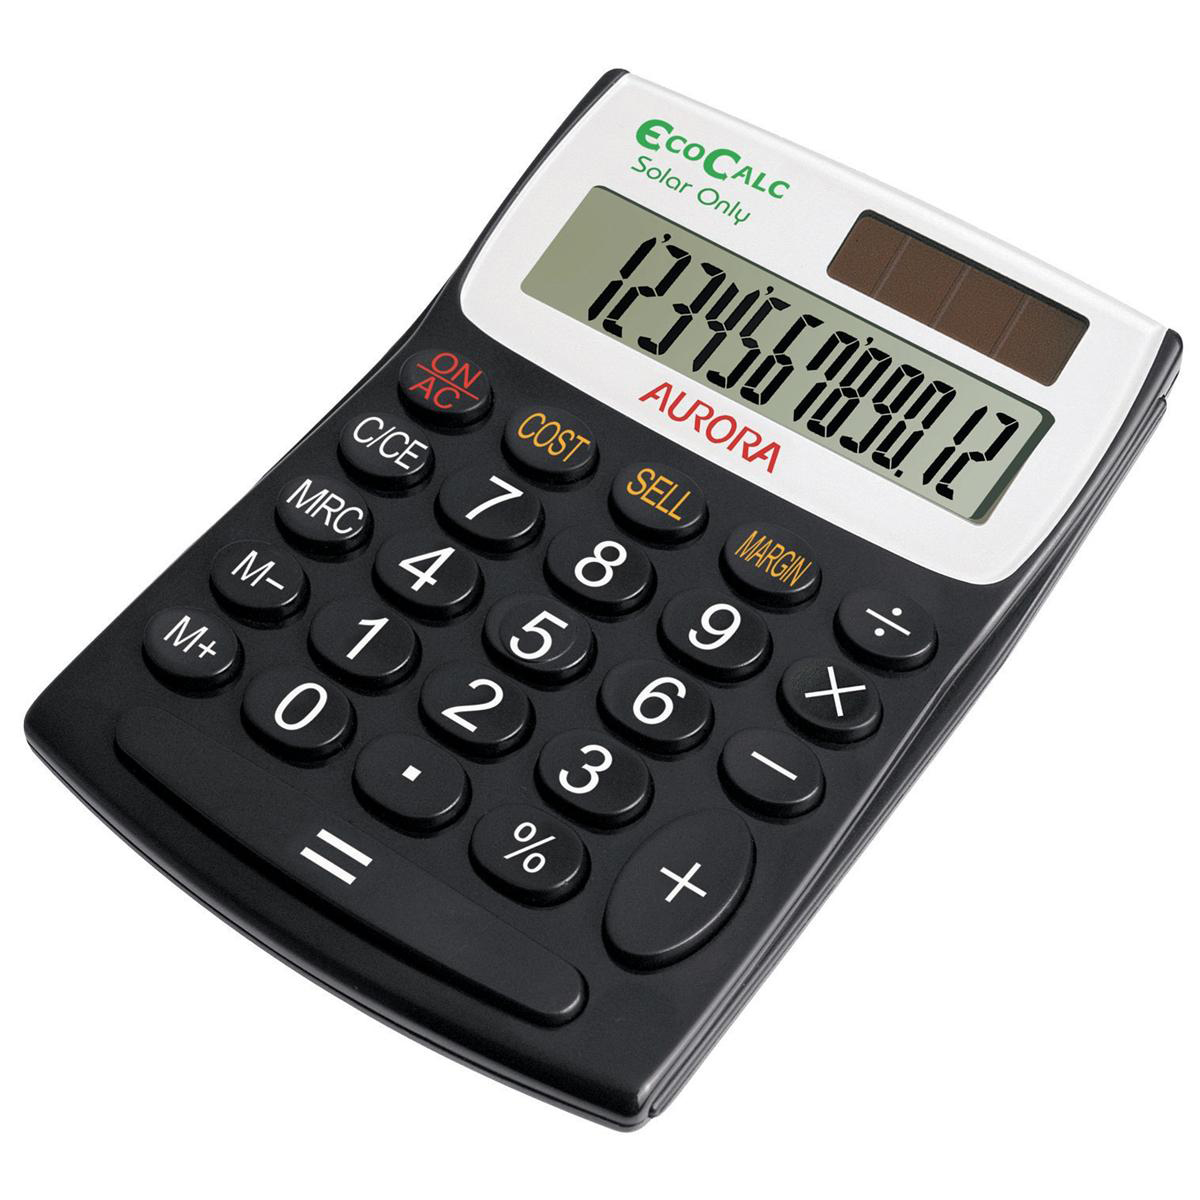 Aurora EcoCalc Desktop Calculator 12 Digit Recycled Solar Powered 98x28x137mm Black Ref EC404